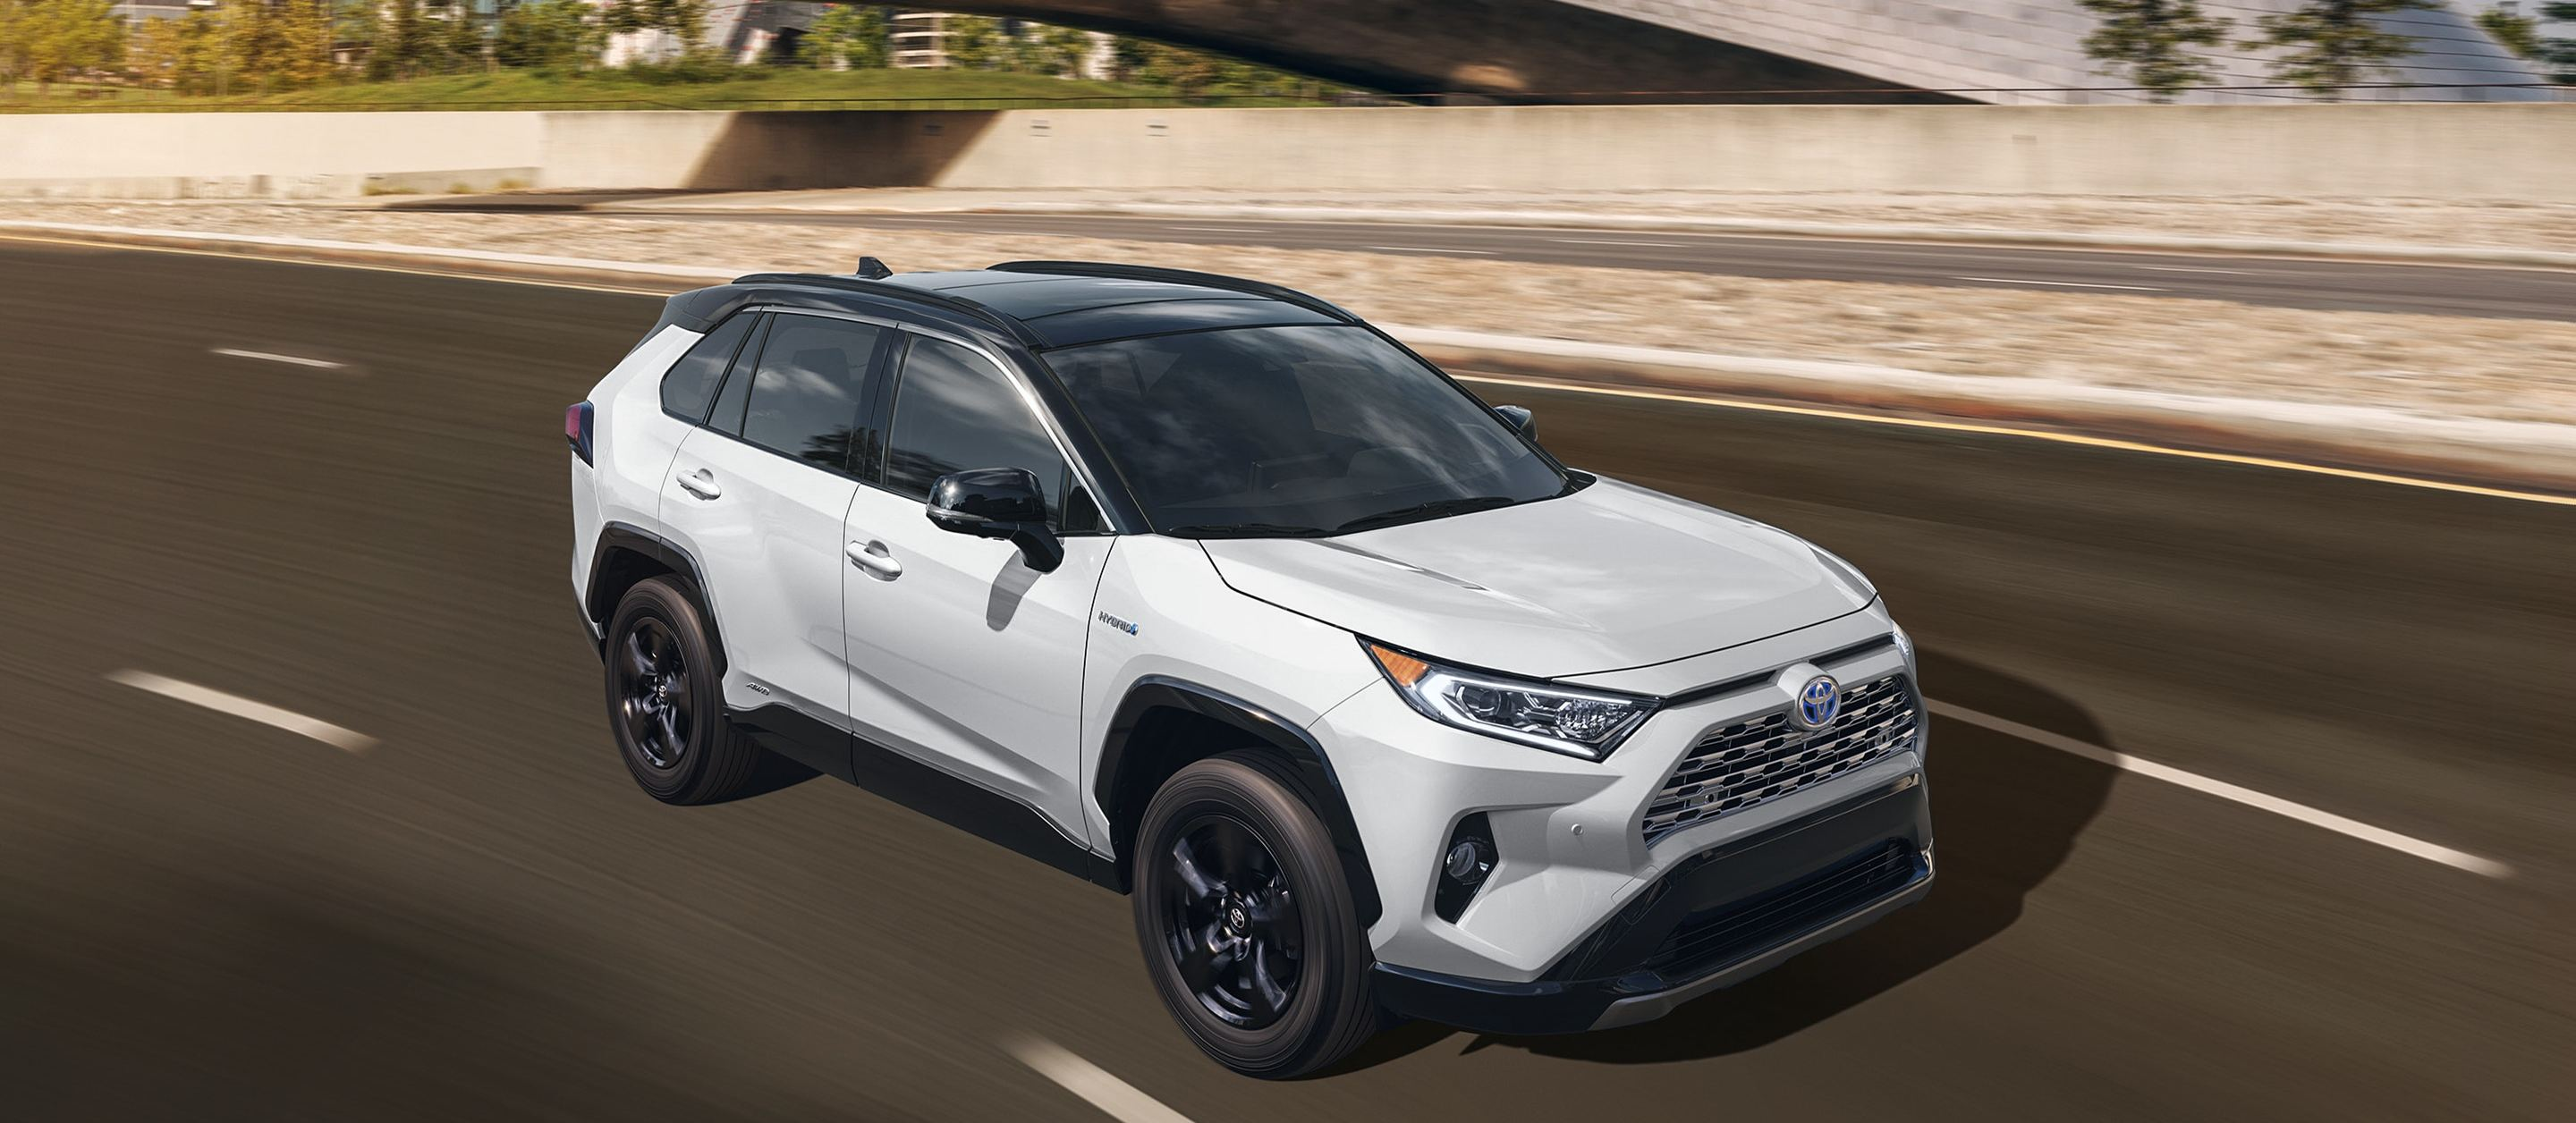 2020 Toyota RAV4 Financing in Tinley Park, IL